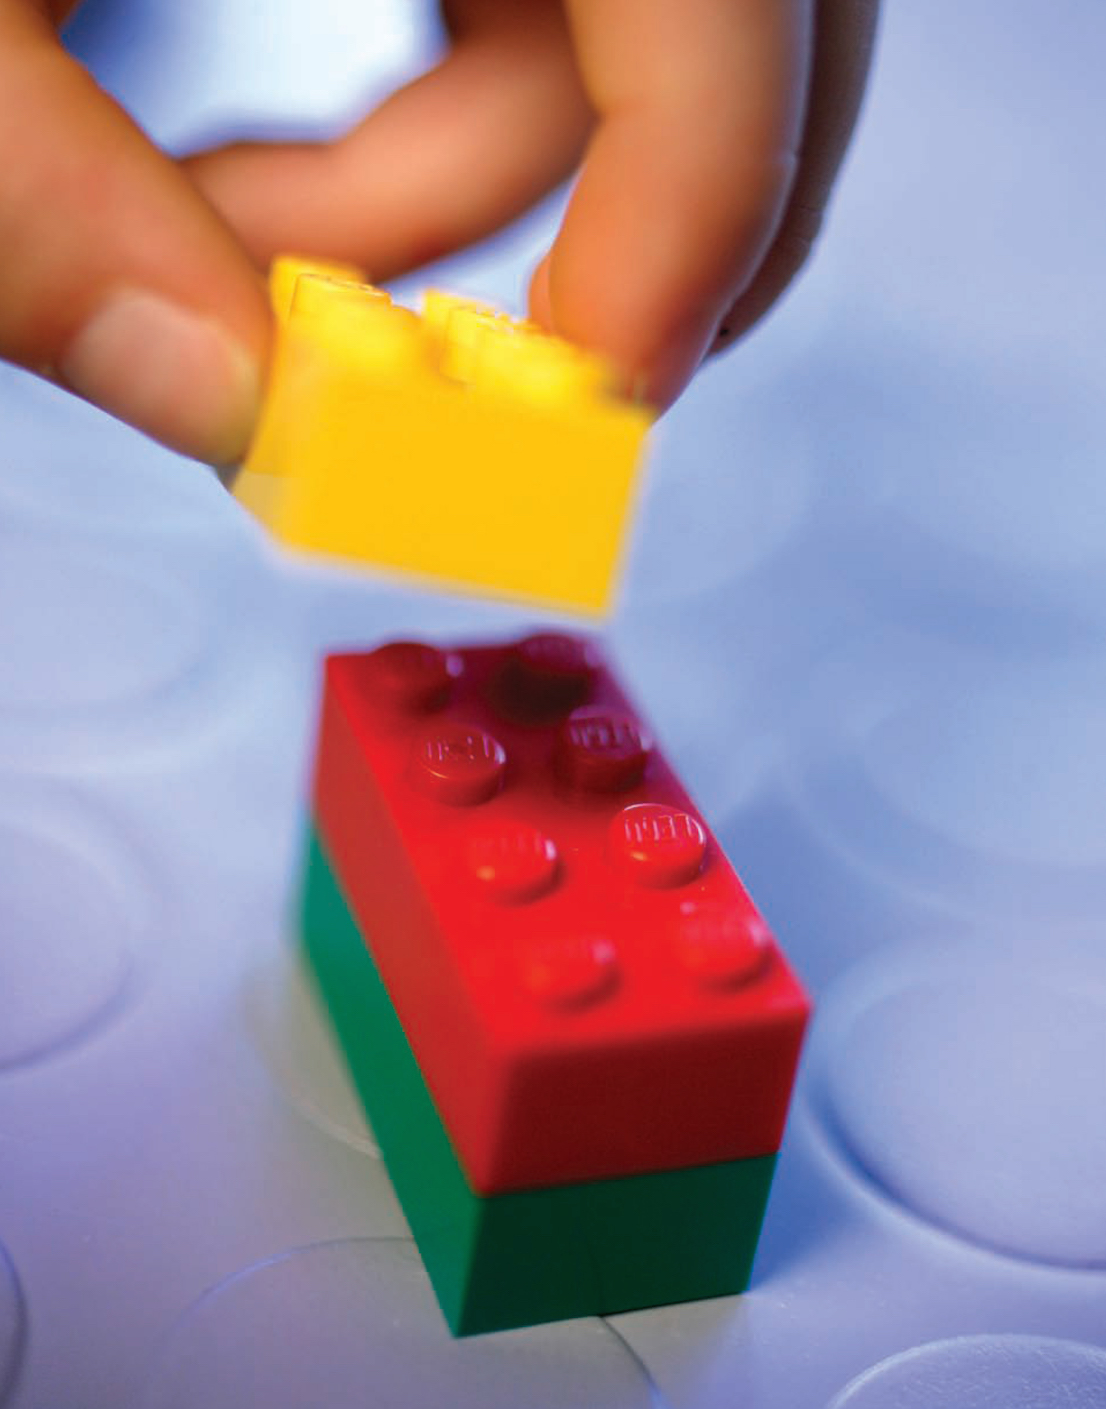 Mattoncini Lego / Lego bricks being stacked. Courtesy: The LEGO Group.